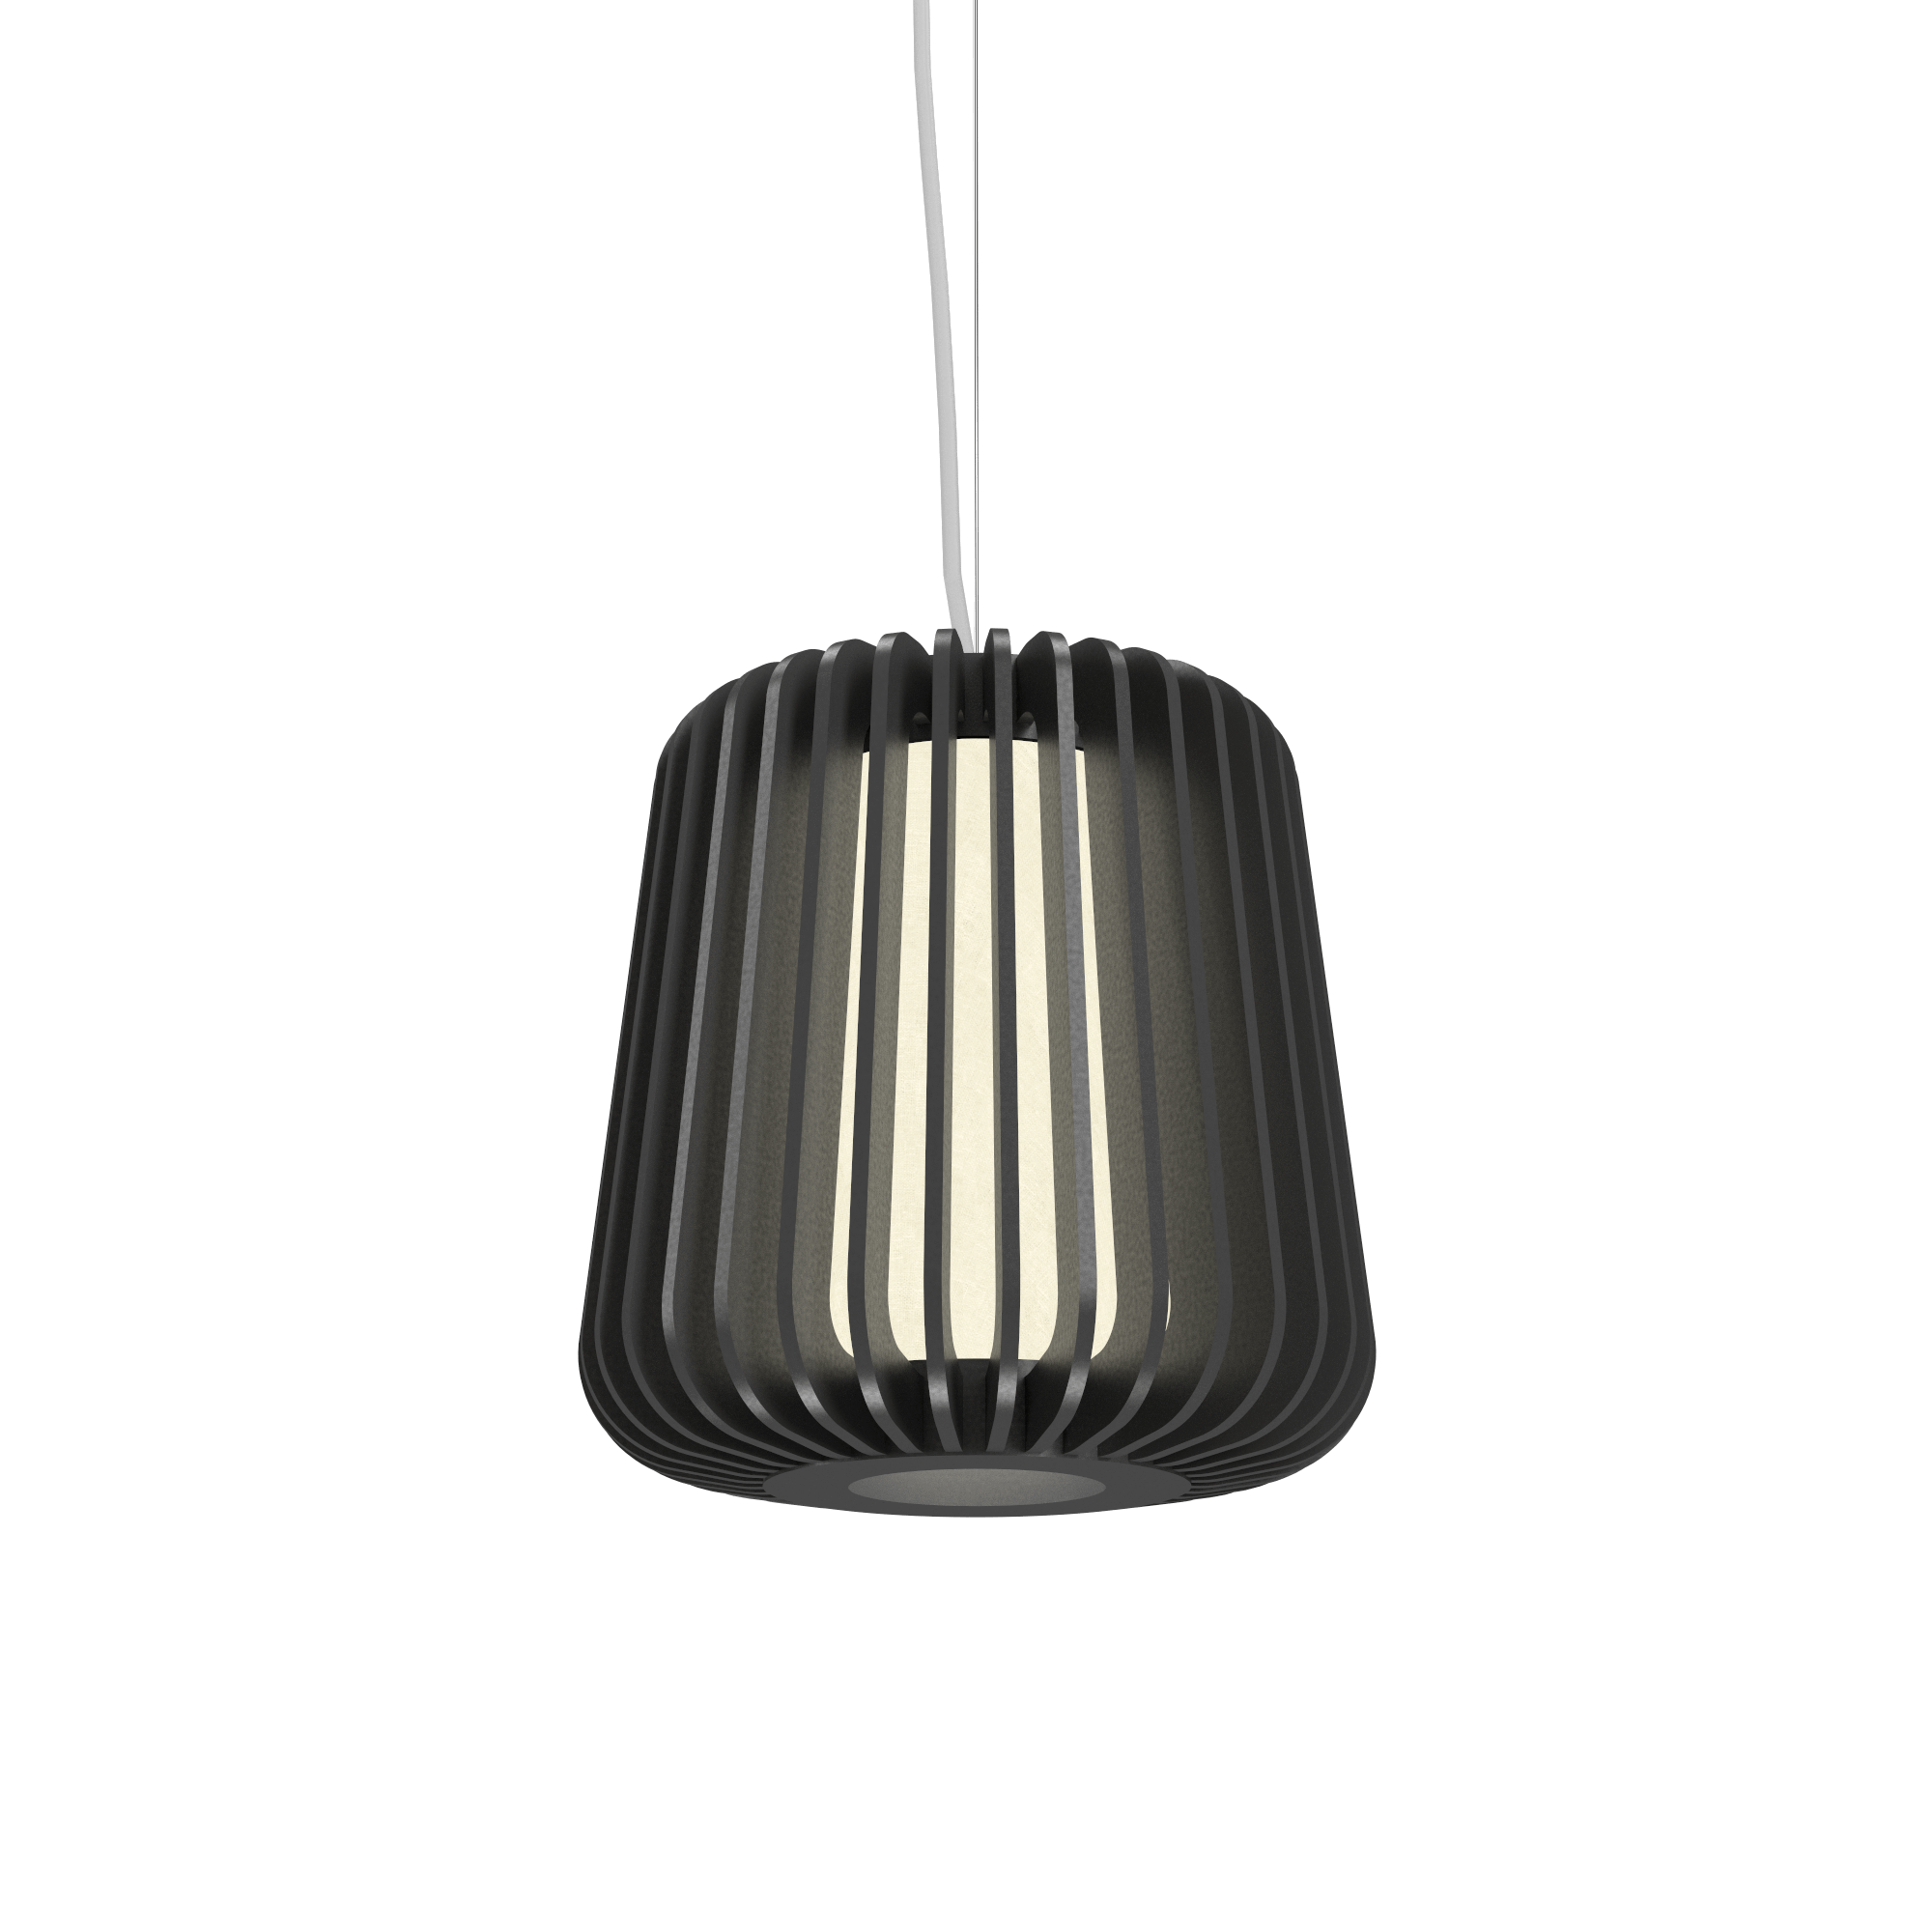 Pendant Lamp Accord Stecche Di Legno 1426 - Stecche Di Legno Line Accord Lighting | Lead Grey